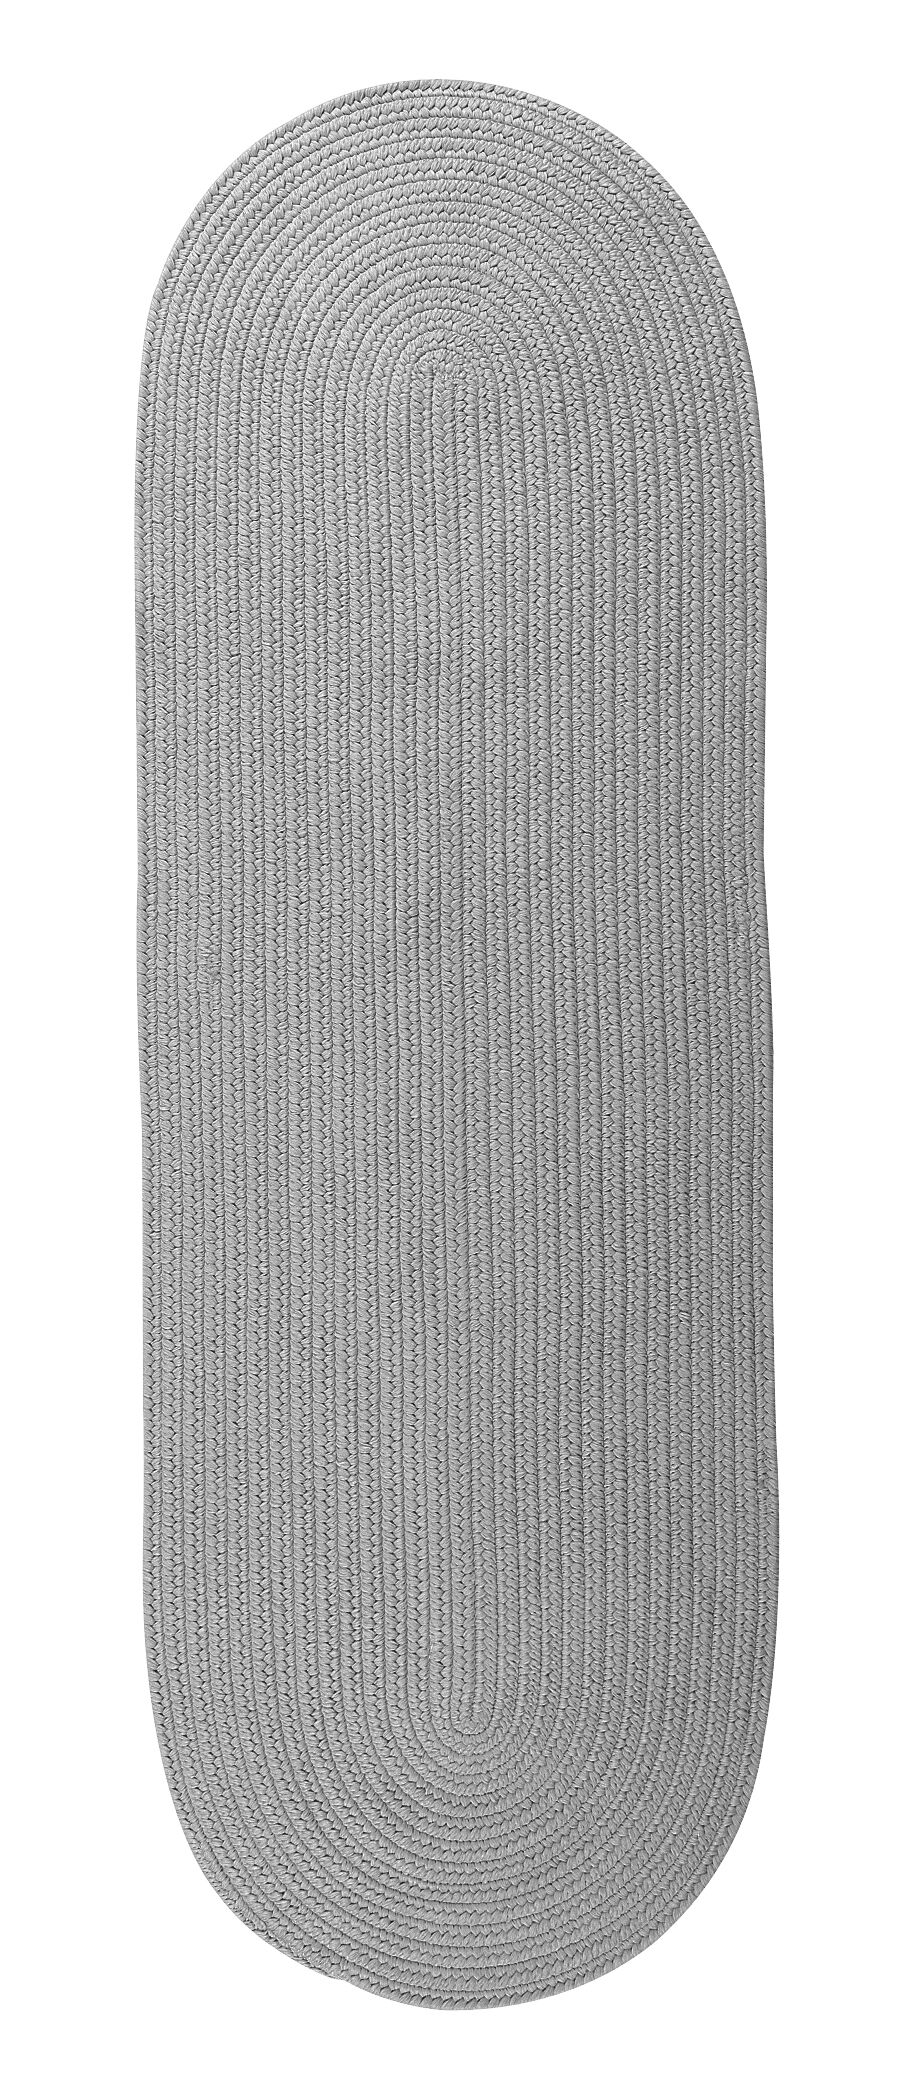 Whitmire Reversible Hand-Braided Gray Indoor/Outdoor Area Rug Rug Size: Runner 2'4